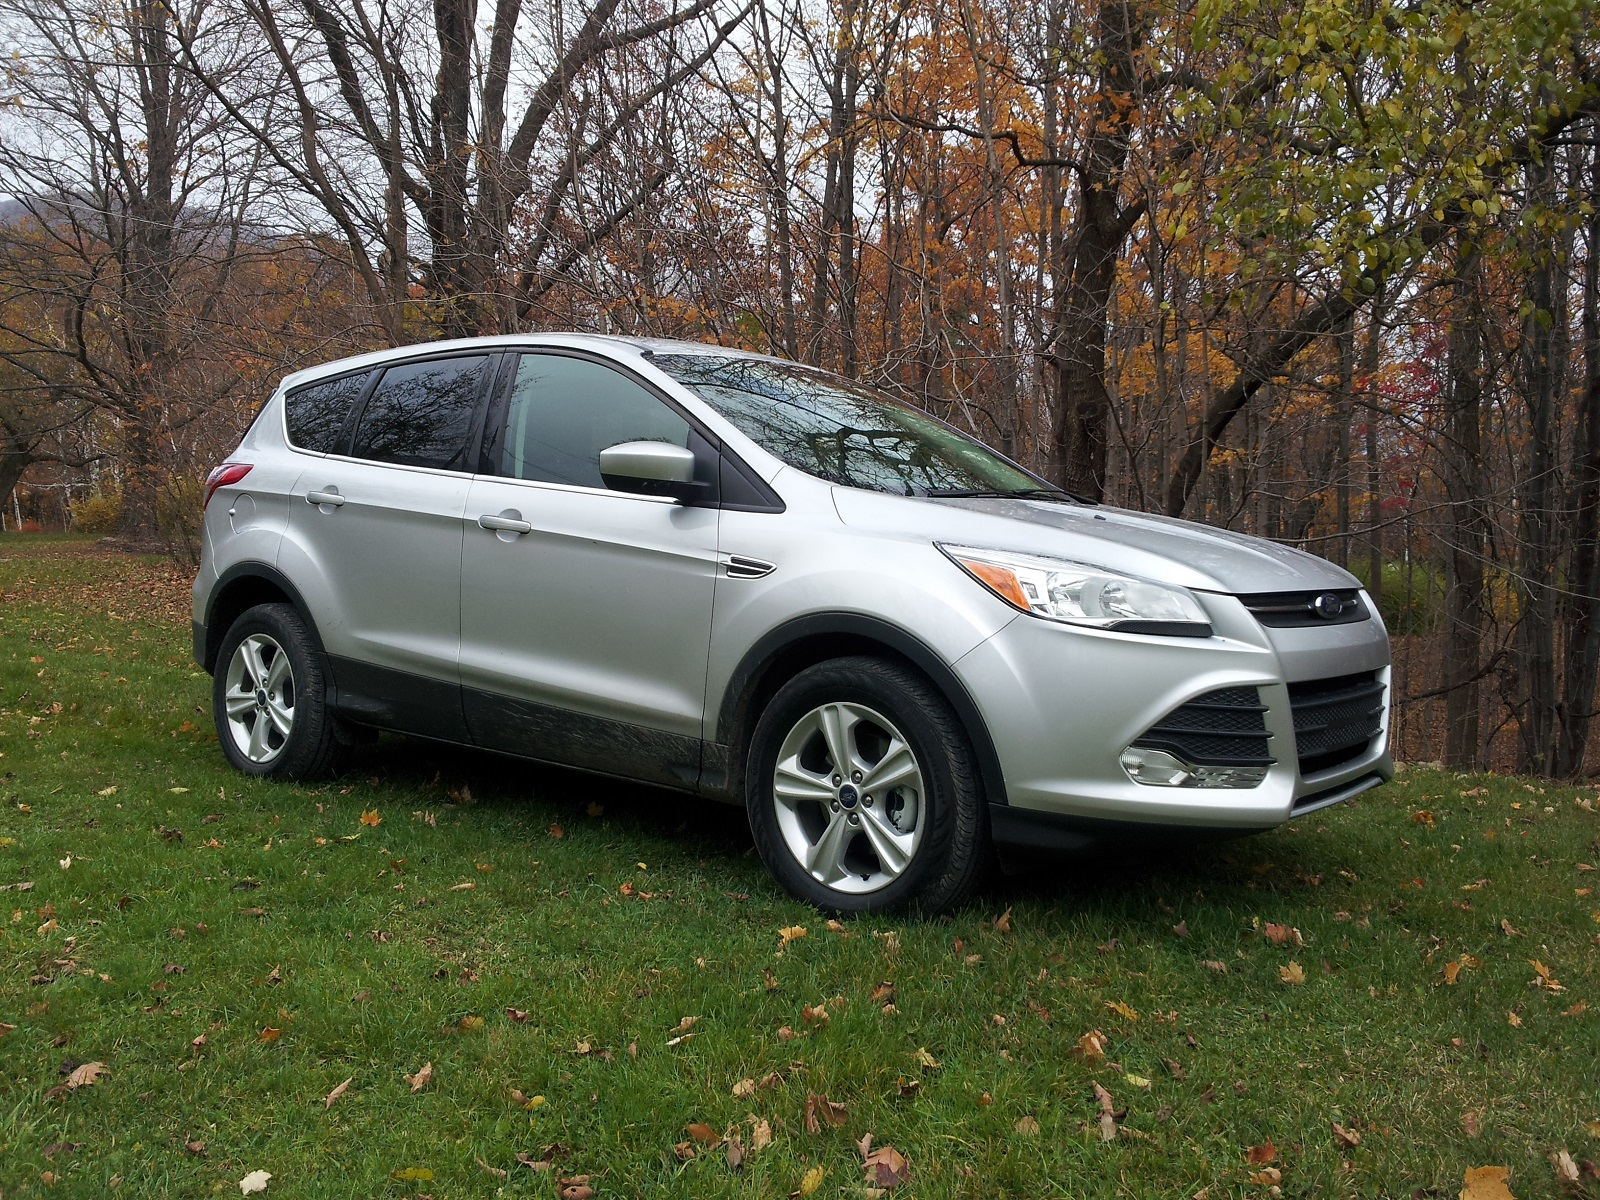 2014 Ford Escape Se 1 6 Liter Ecoboost Gas Mileage Drive